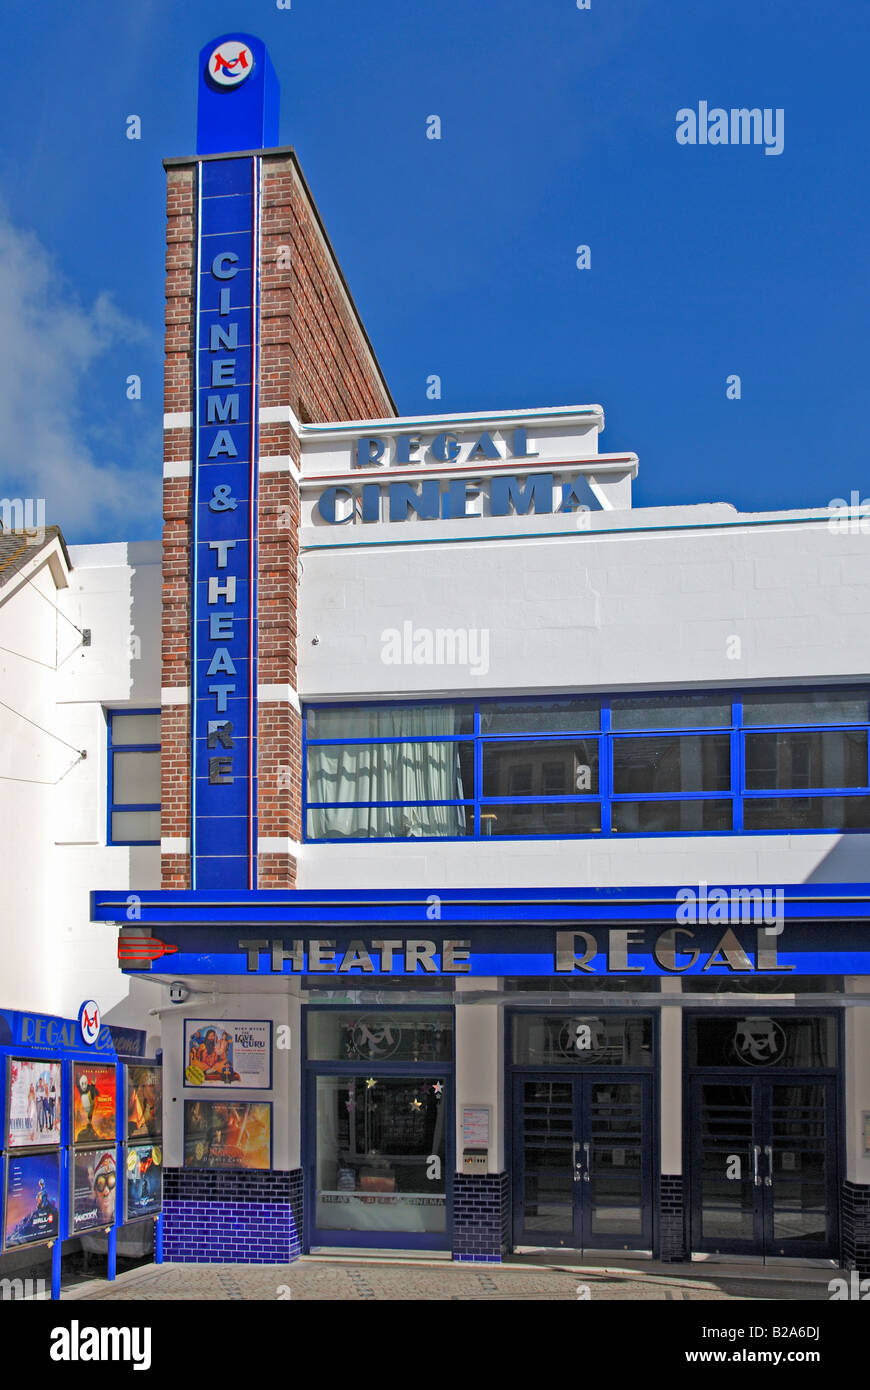 Recientemente reformado el Regal Cinema en Redruth, Cornwall, UK Imagen De Stock